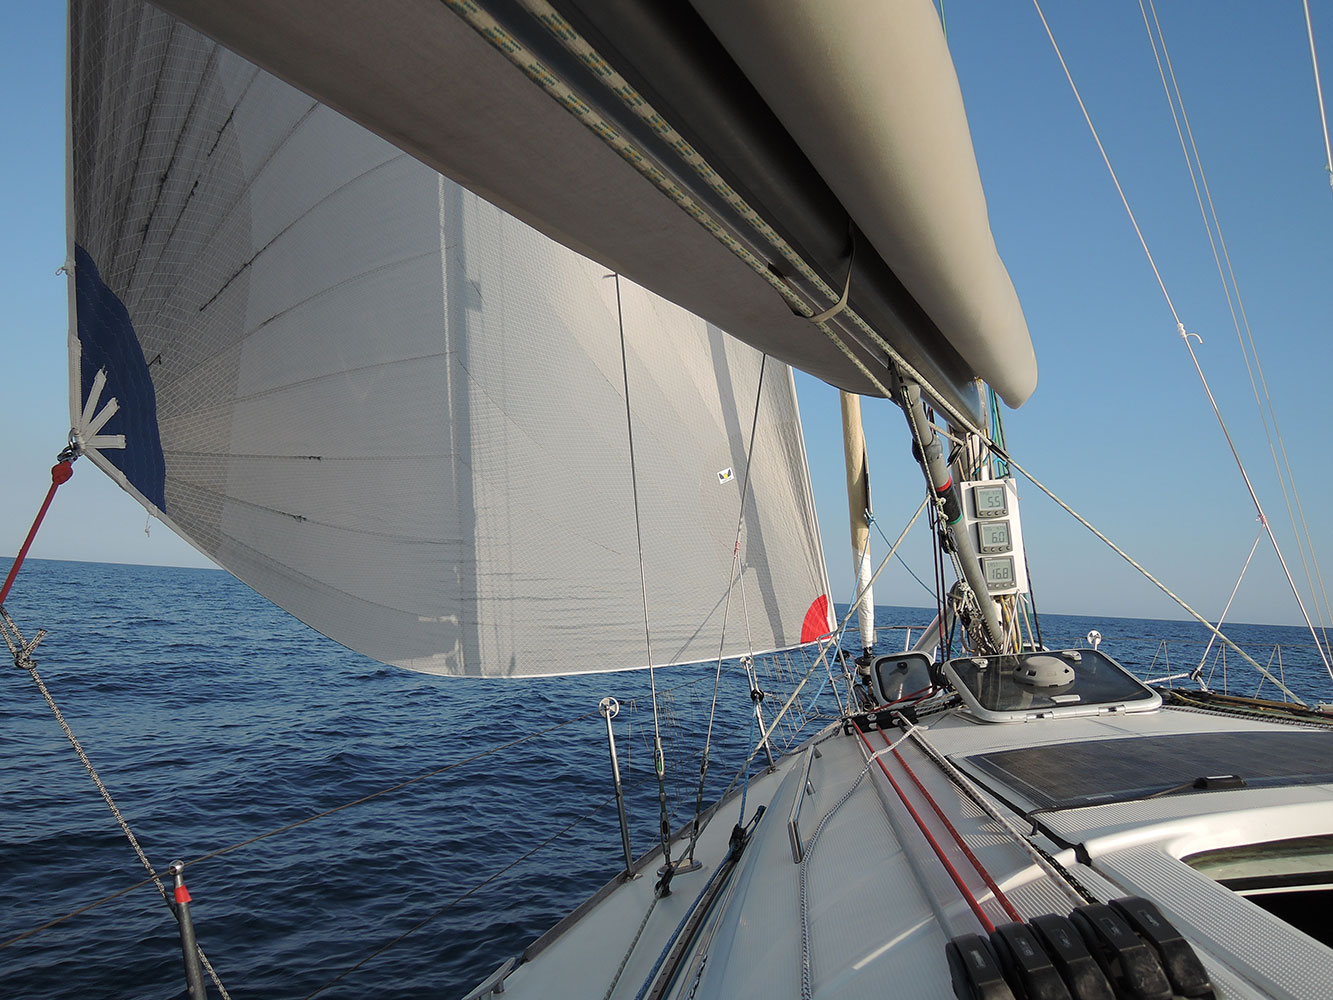 beneteau-first-40-7-code-o-running-wind-speed